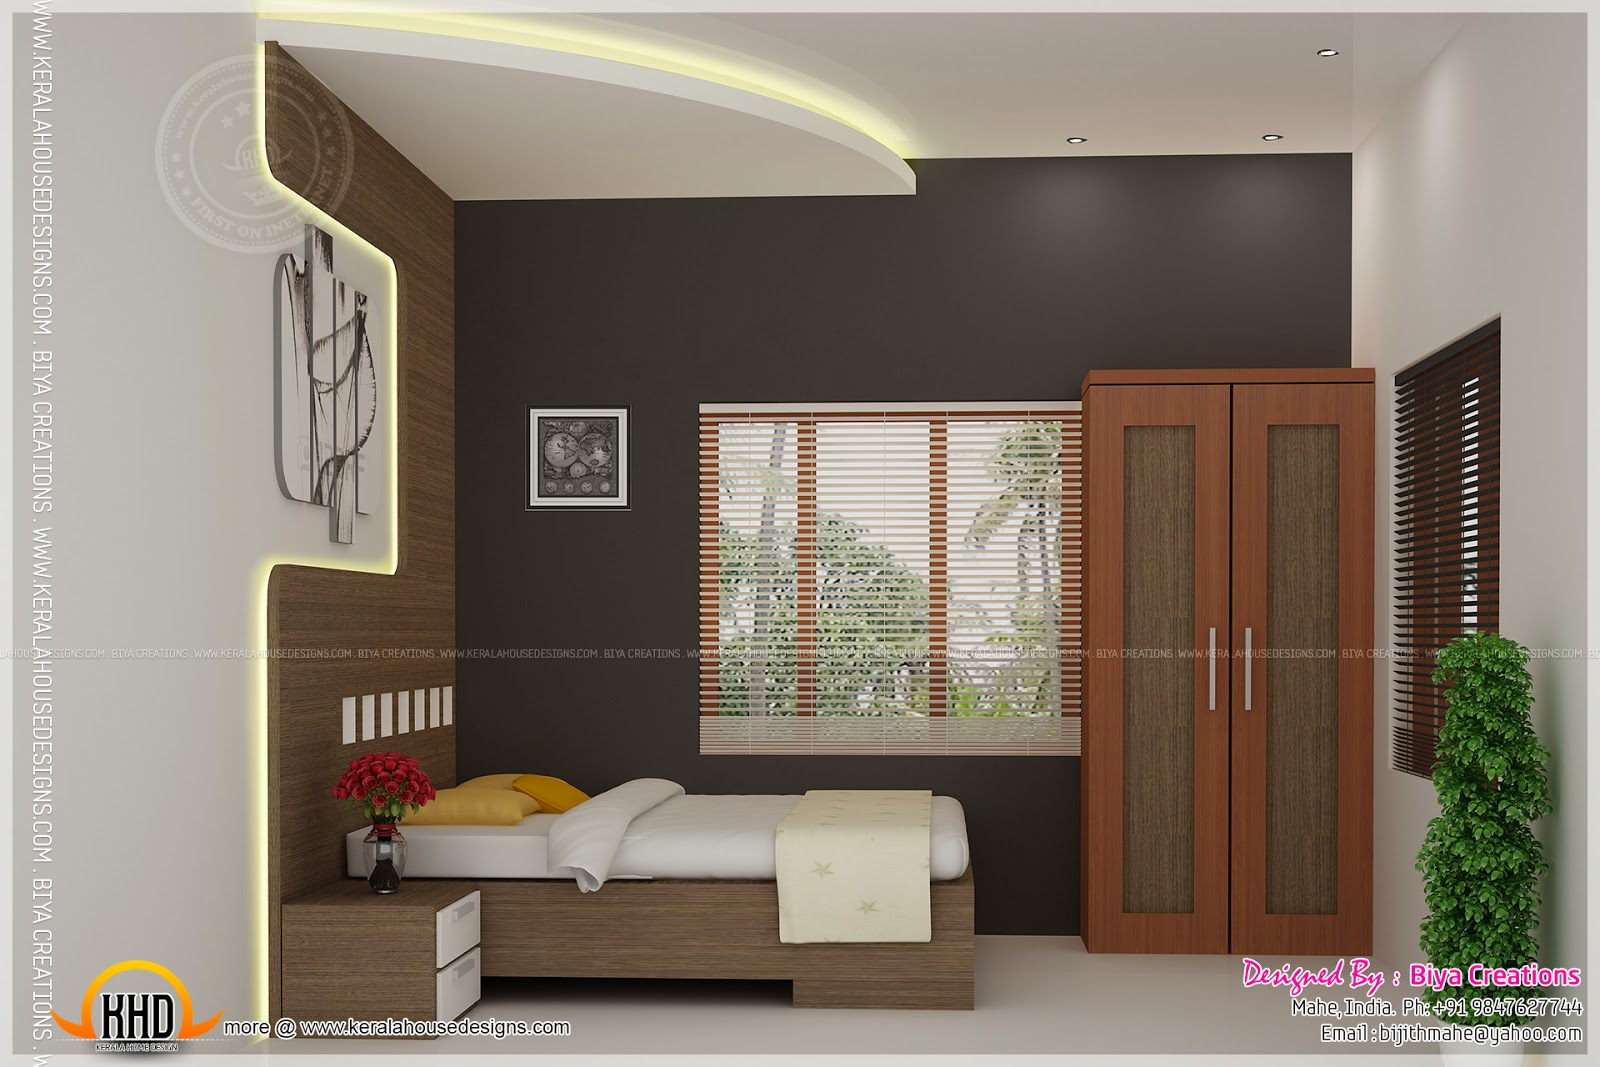 Bedroom kid bedroom and kitchen interior kerala home for Simple living room designs in india